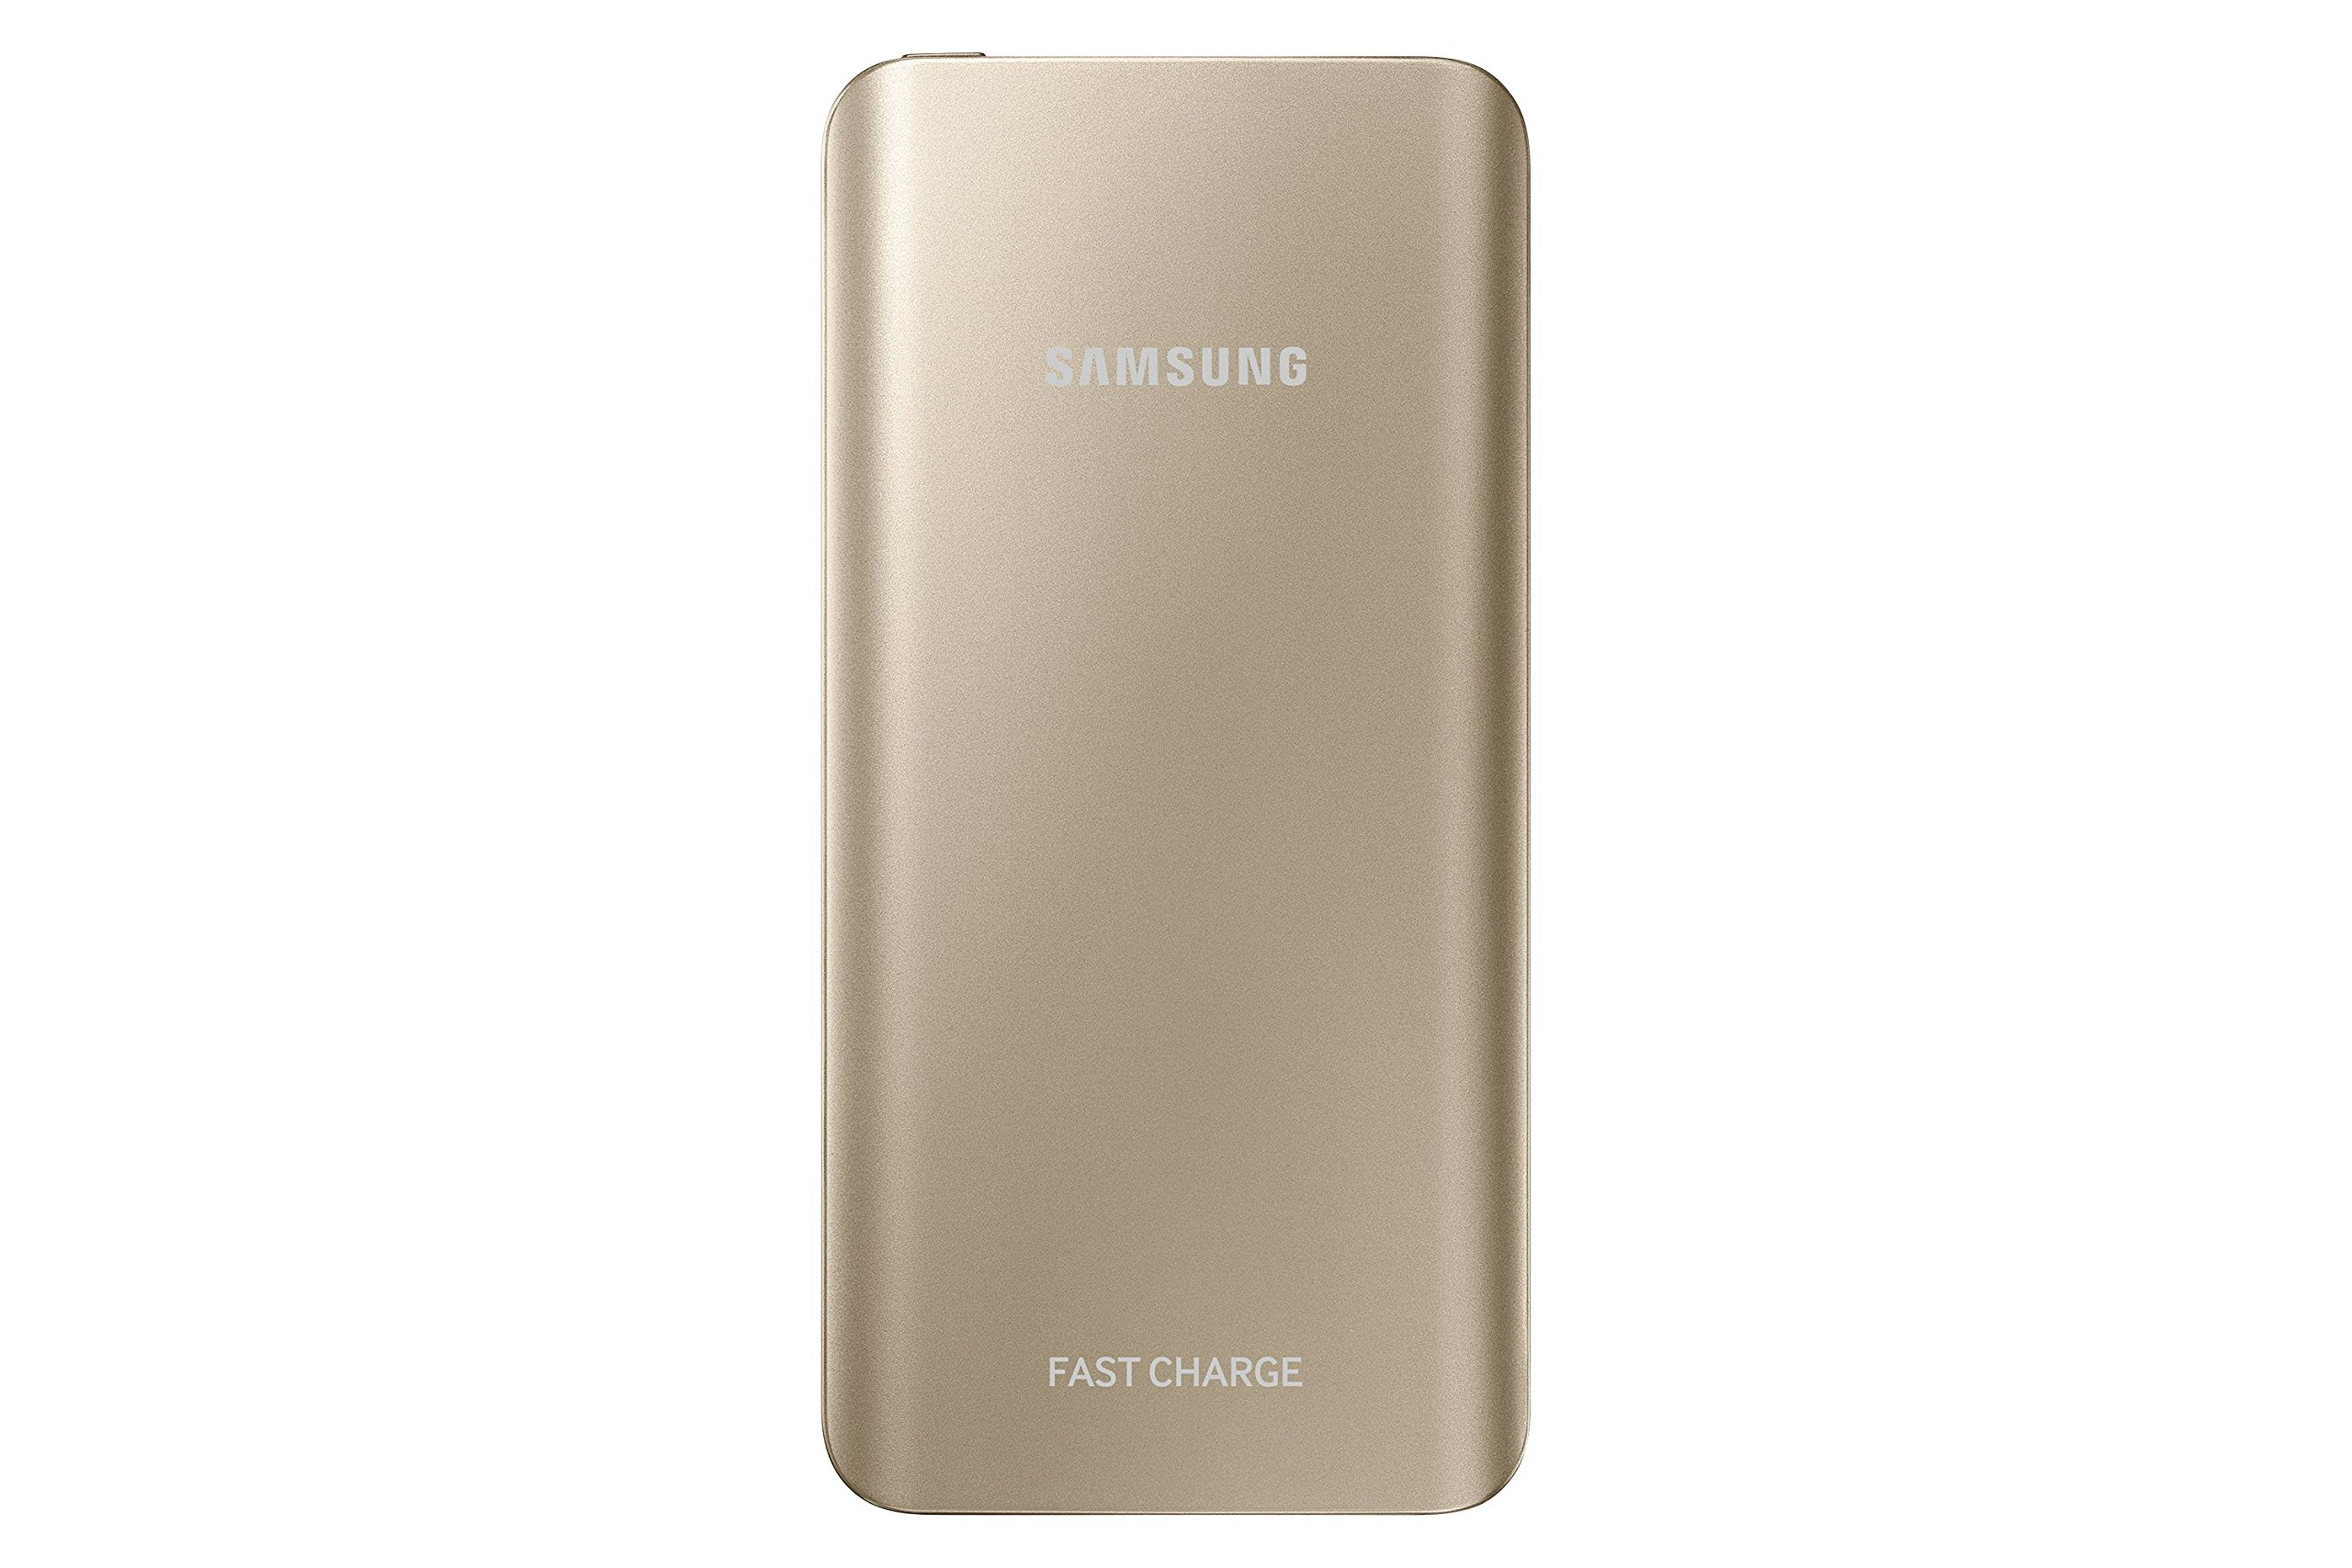 Samsung Fast Charge 5200mAh Battery Pack , Gold